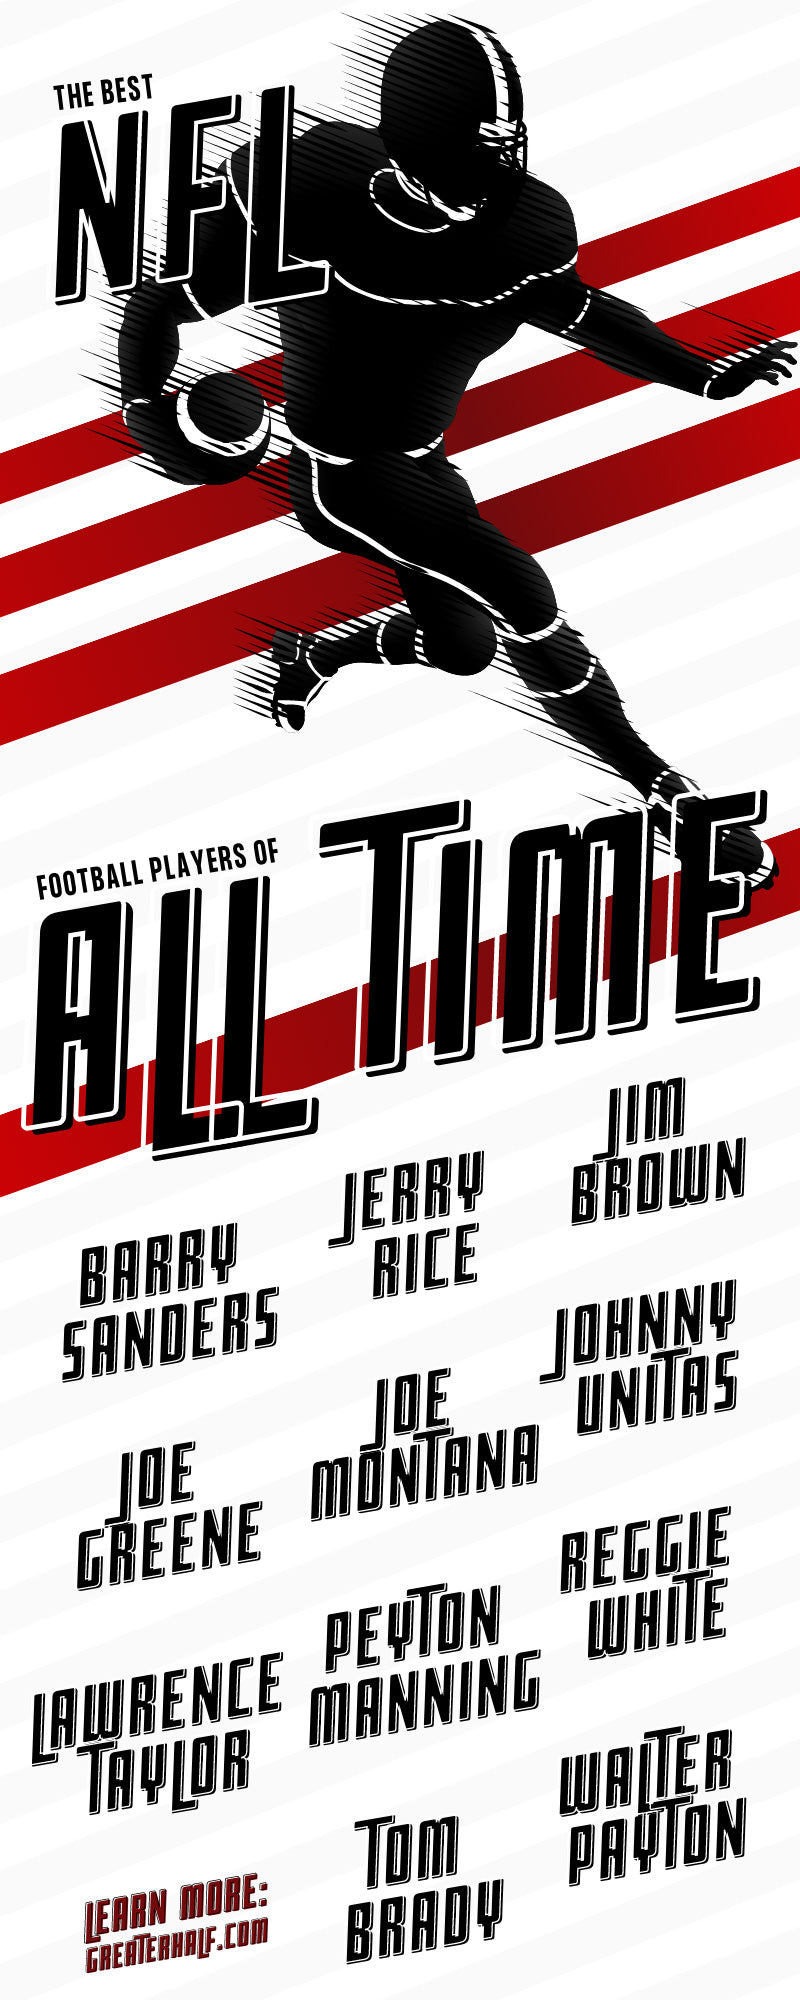 The Best NFL Football Players of All Time